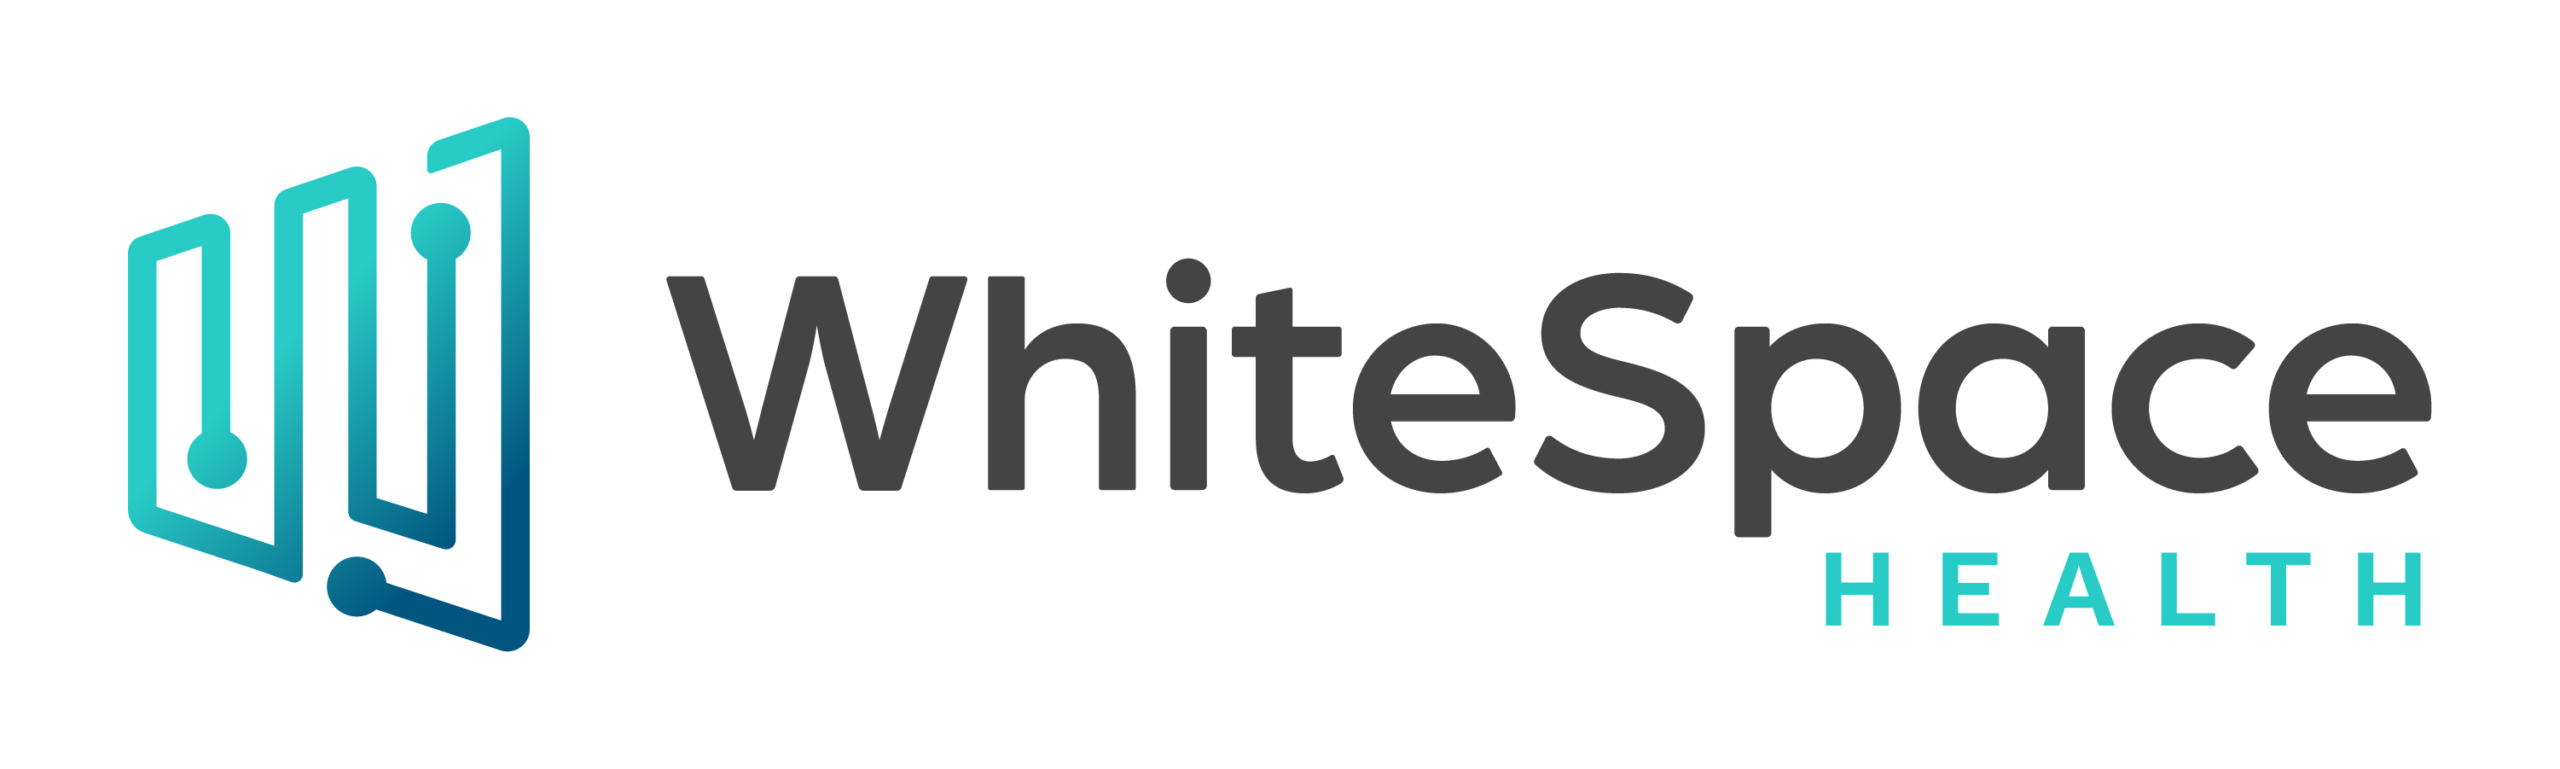 WhiteSpace Health, Inc.